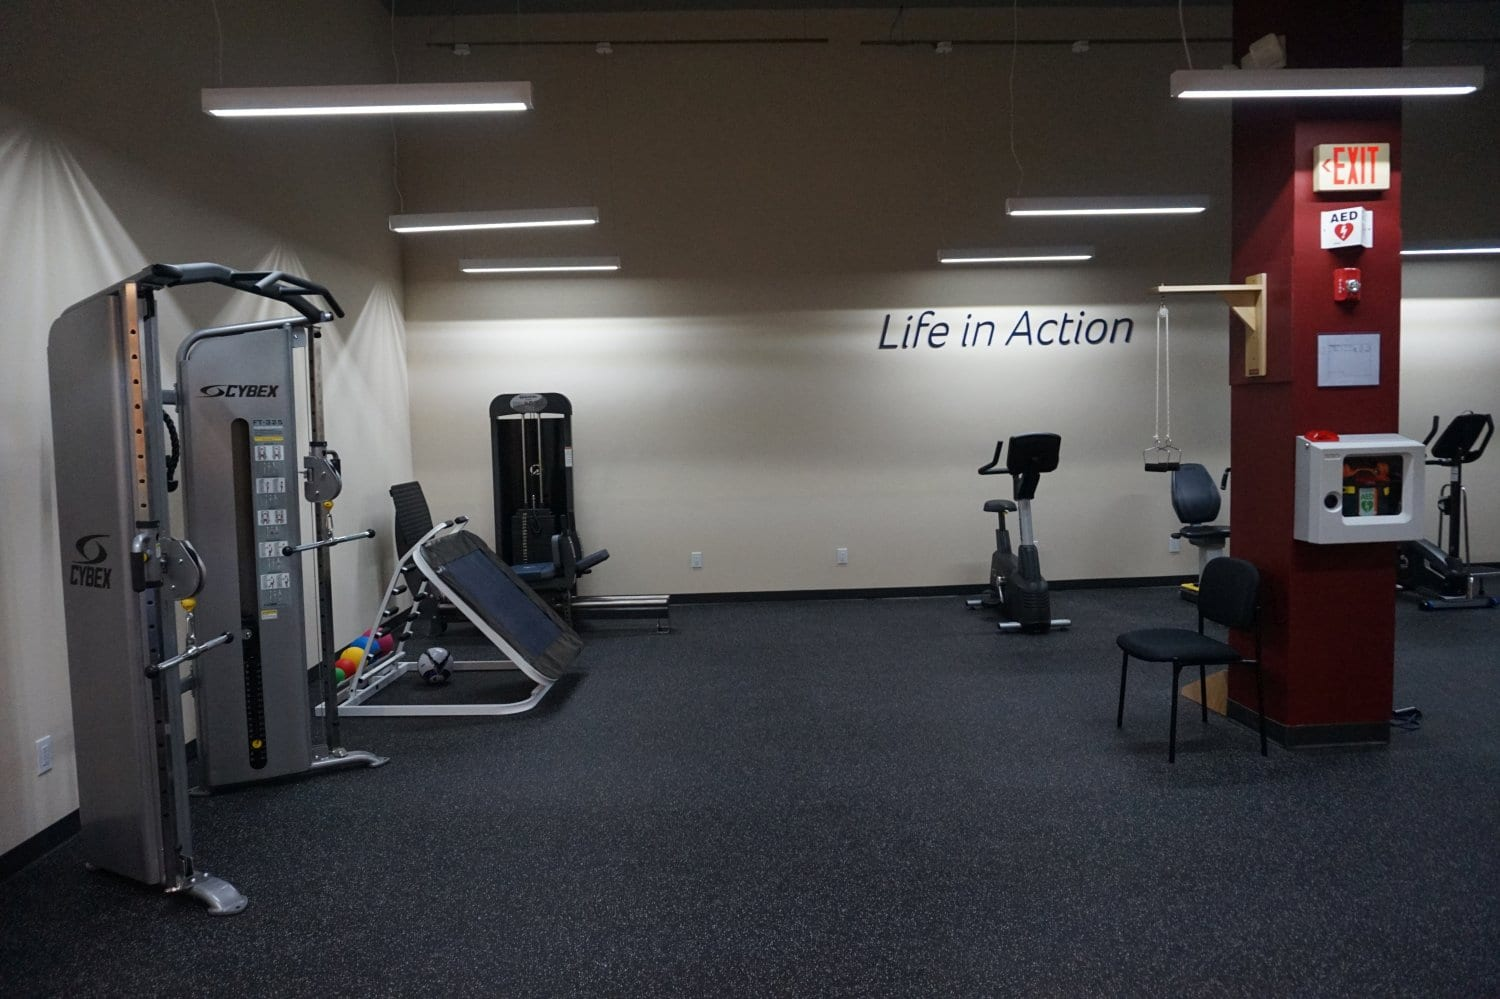 Here is another part of the interior of our physical therapy clinic in West Islip New York. This image shows more equipment at our facility.